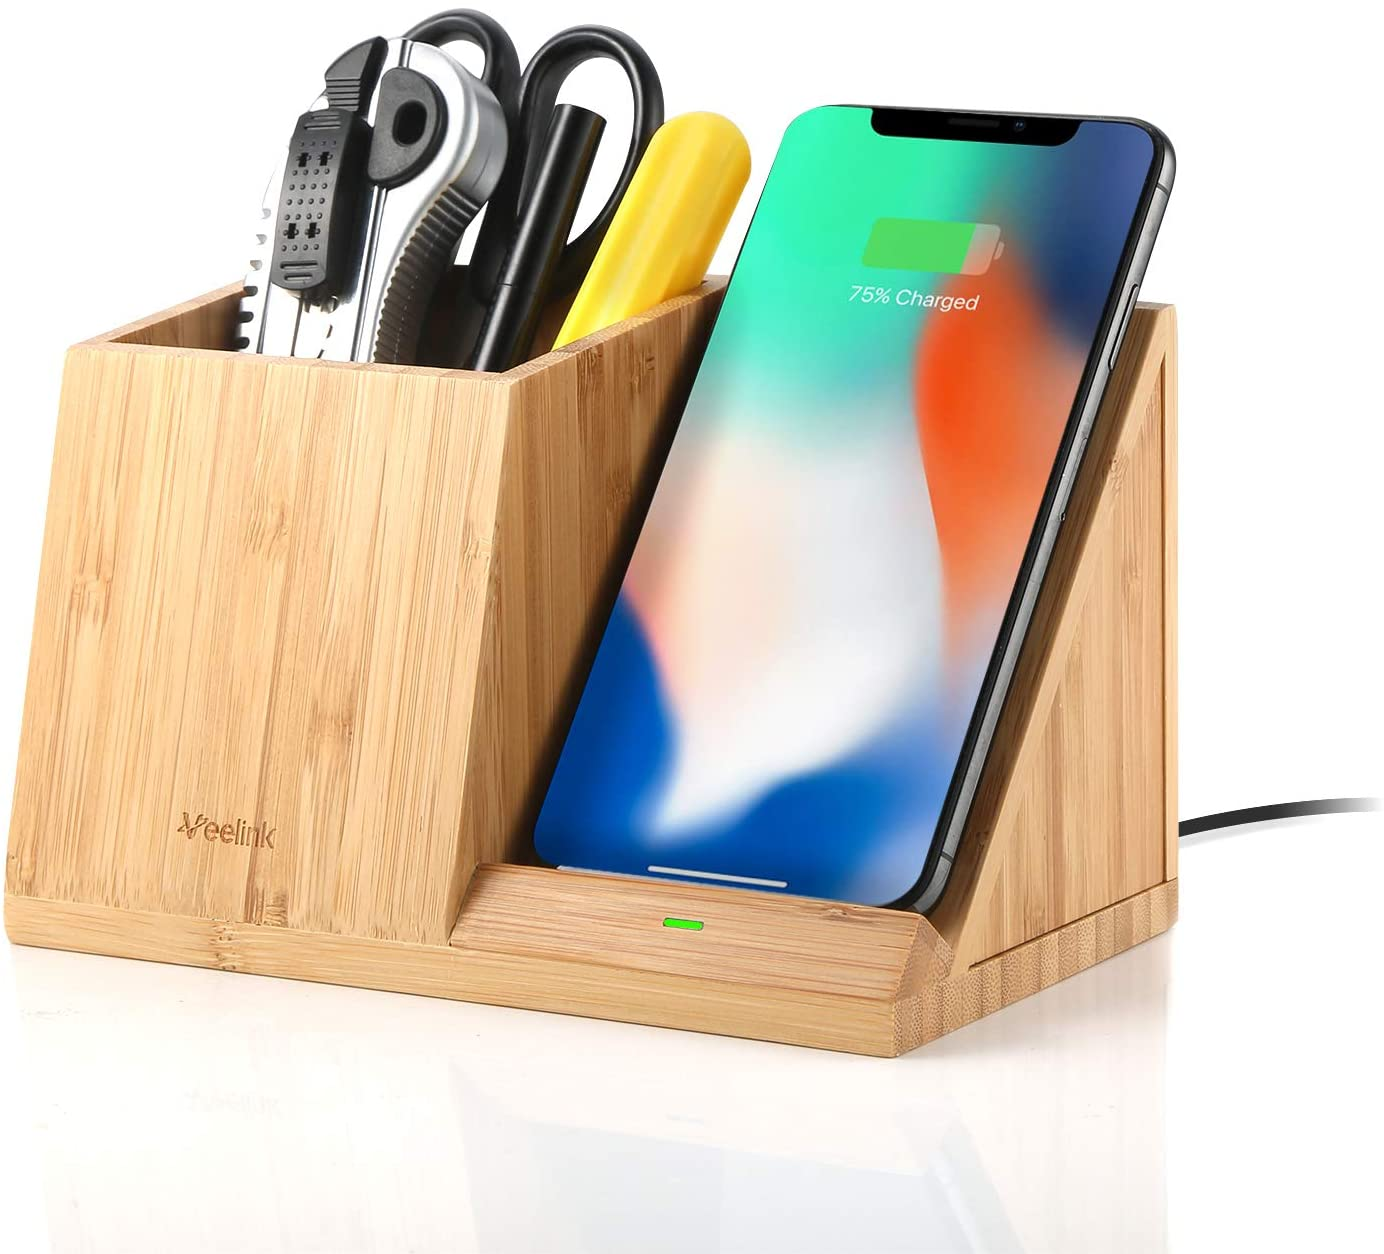 Veelink Bamboo Wireless Charger with Organizer; cool office supplies